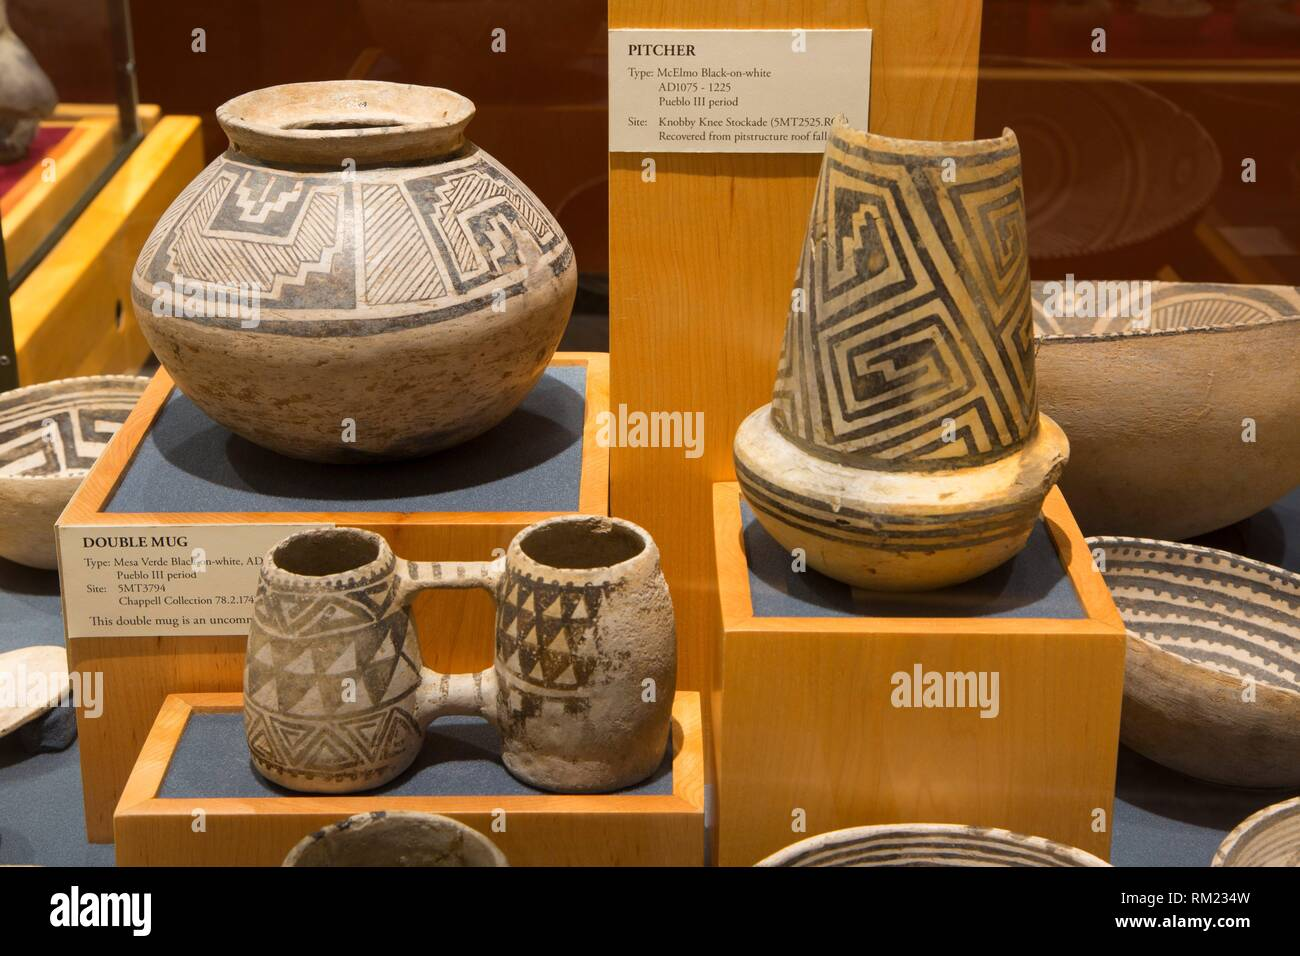 Museum pottery display, Anasazi Heritage Center, Canyons of the Ancients National Monument, Colorado. - Stock Image